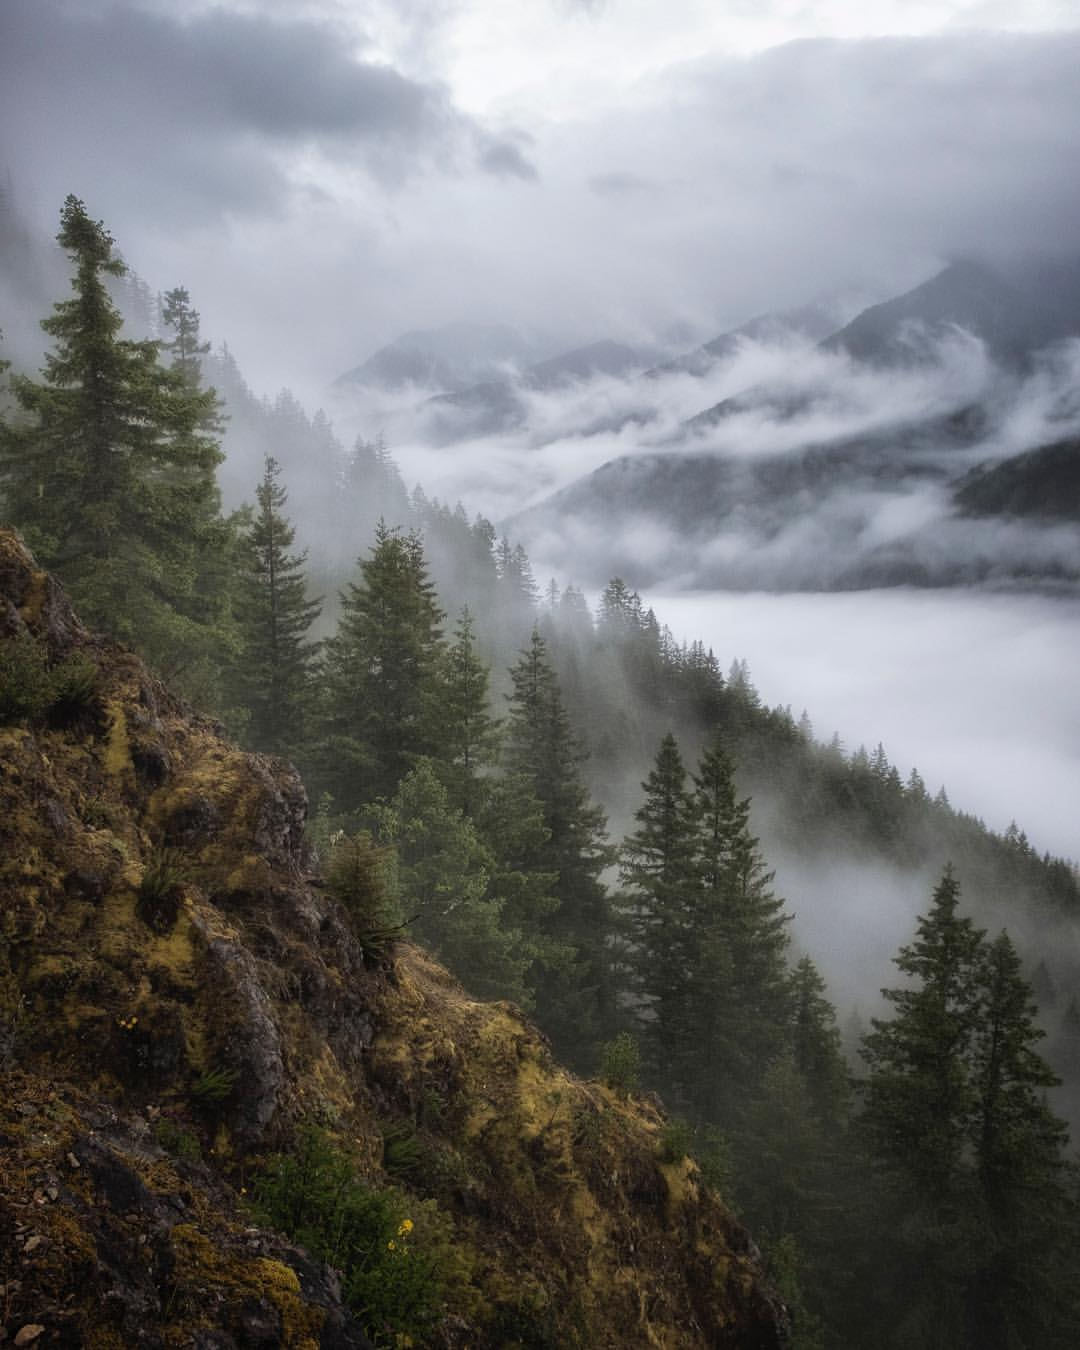 A Northern Olympic River Valley